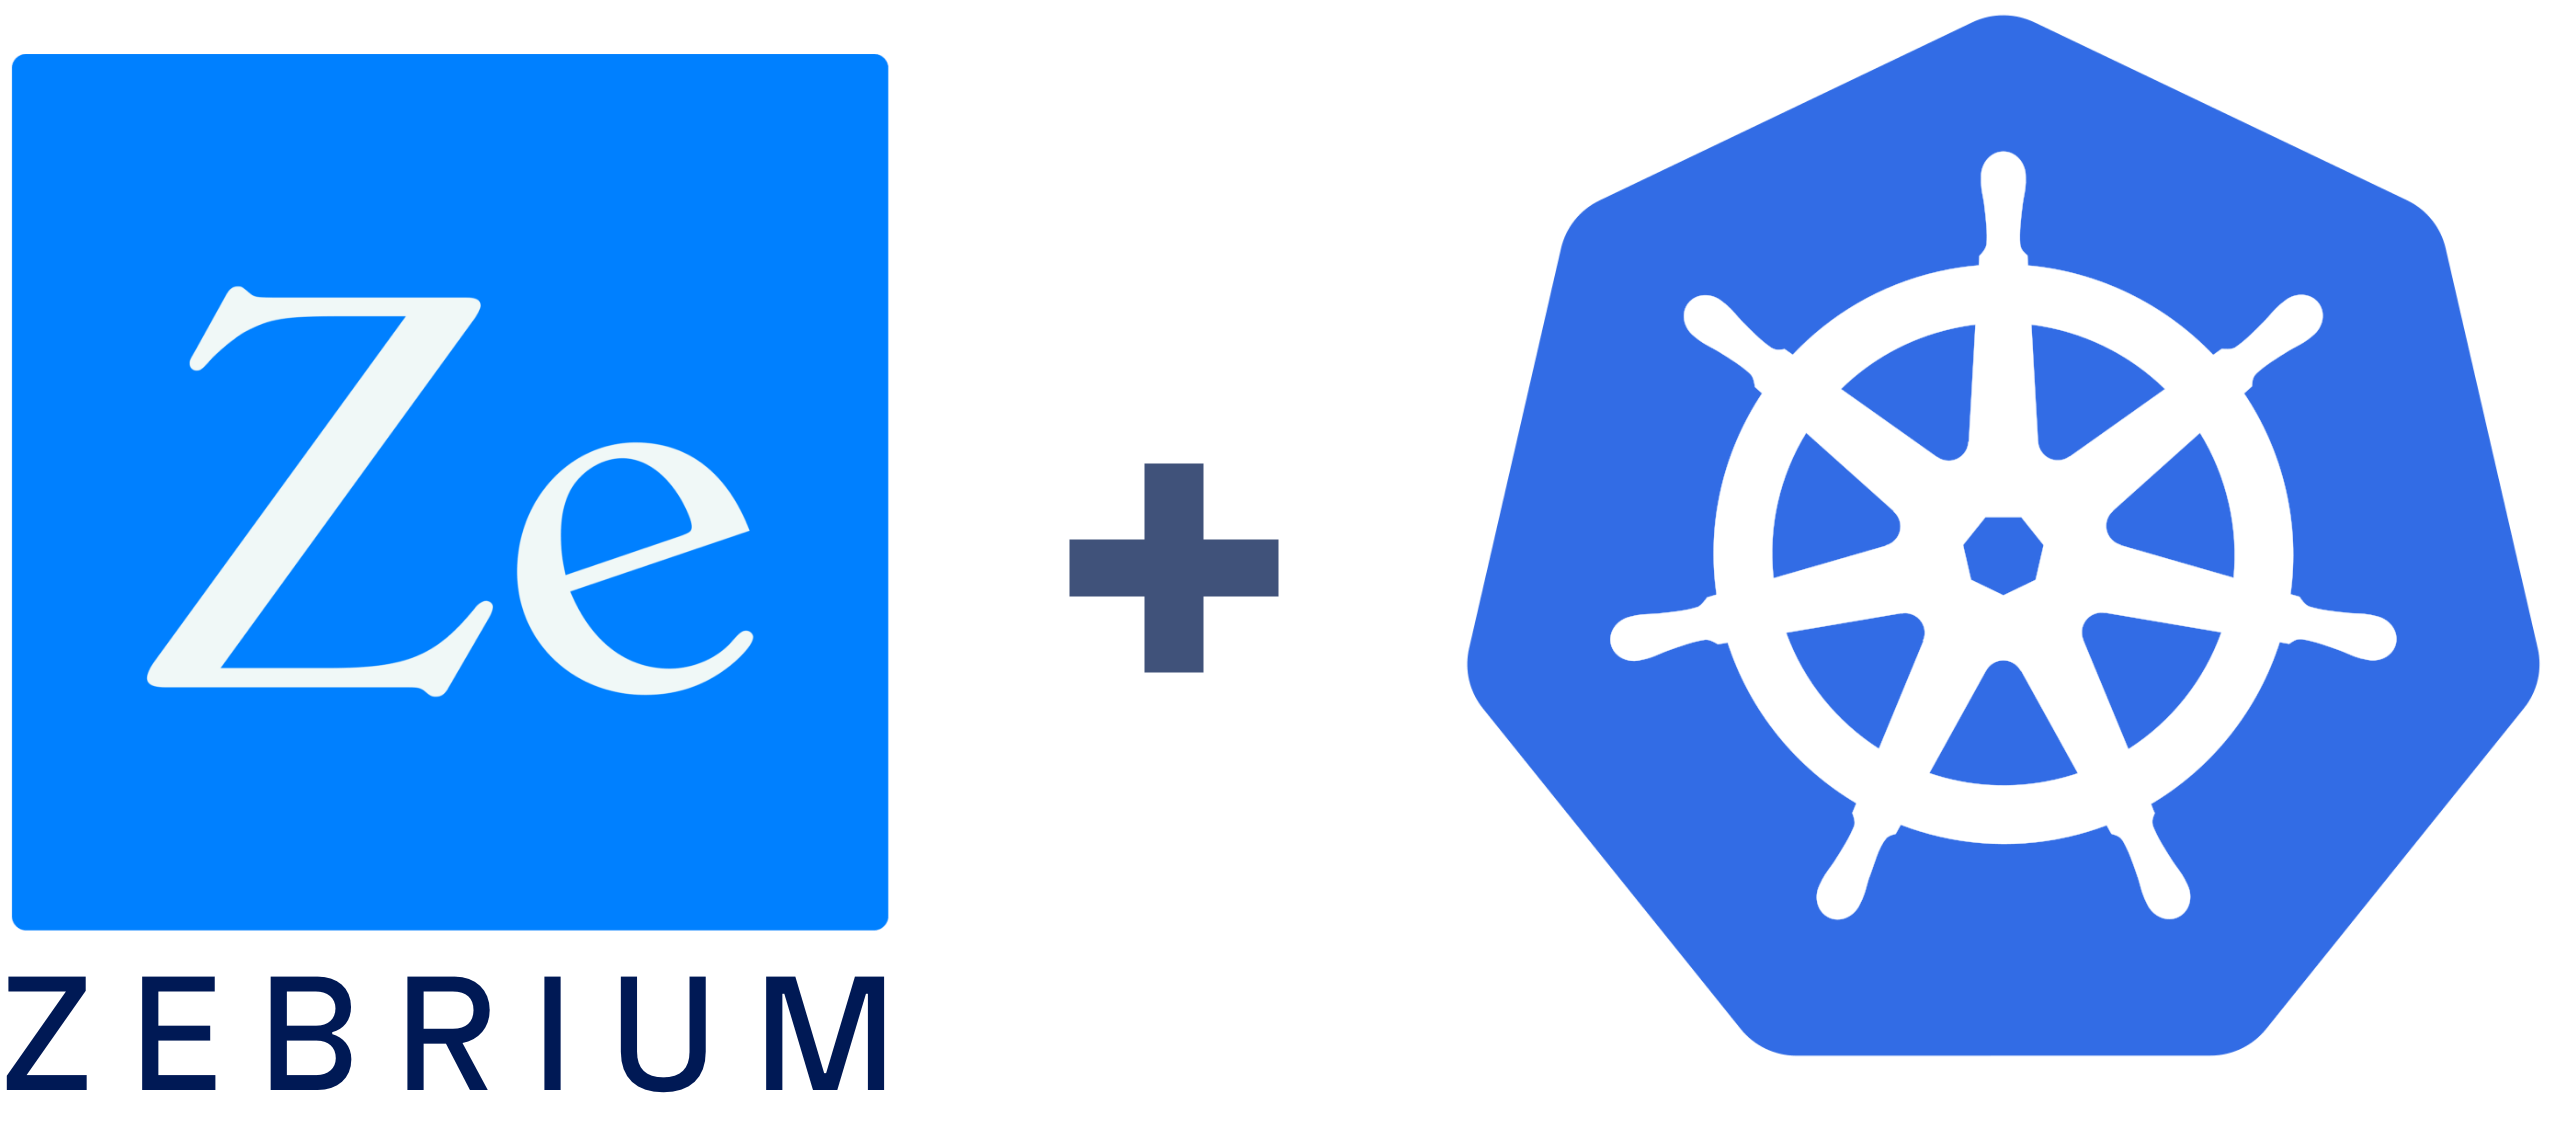 Zebrium plus Kubernetes, a perfect combination